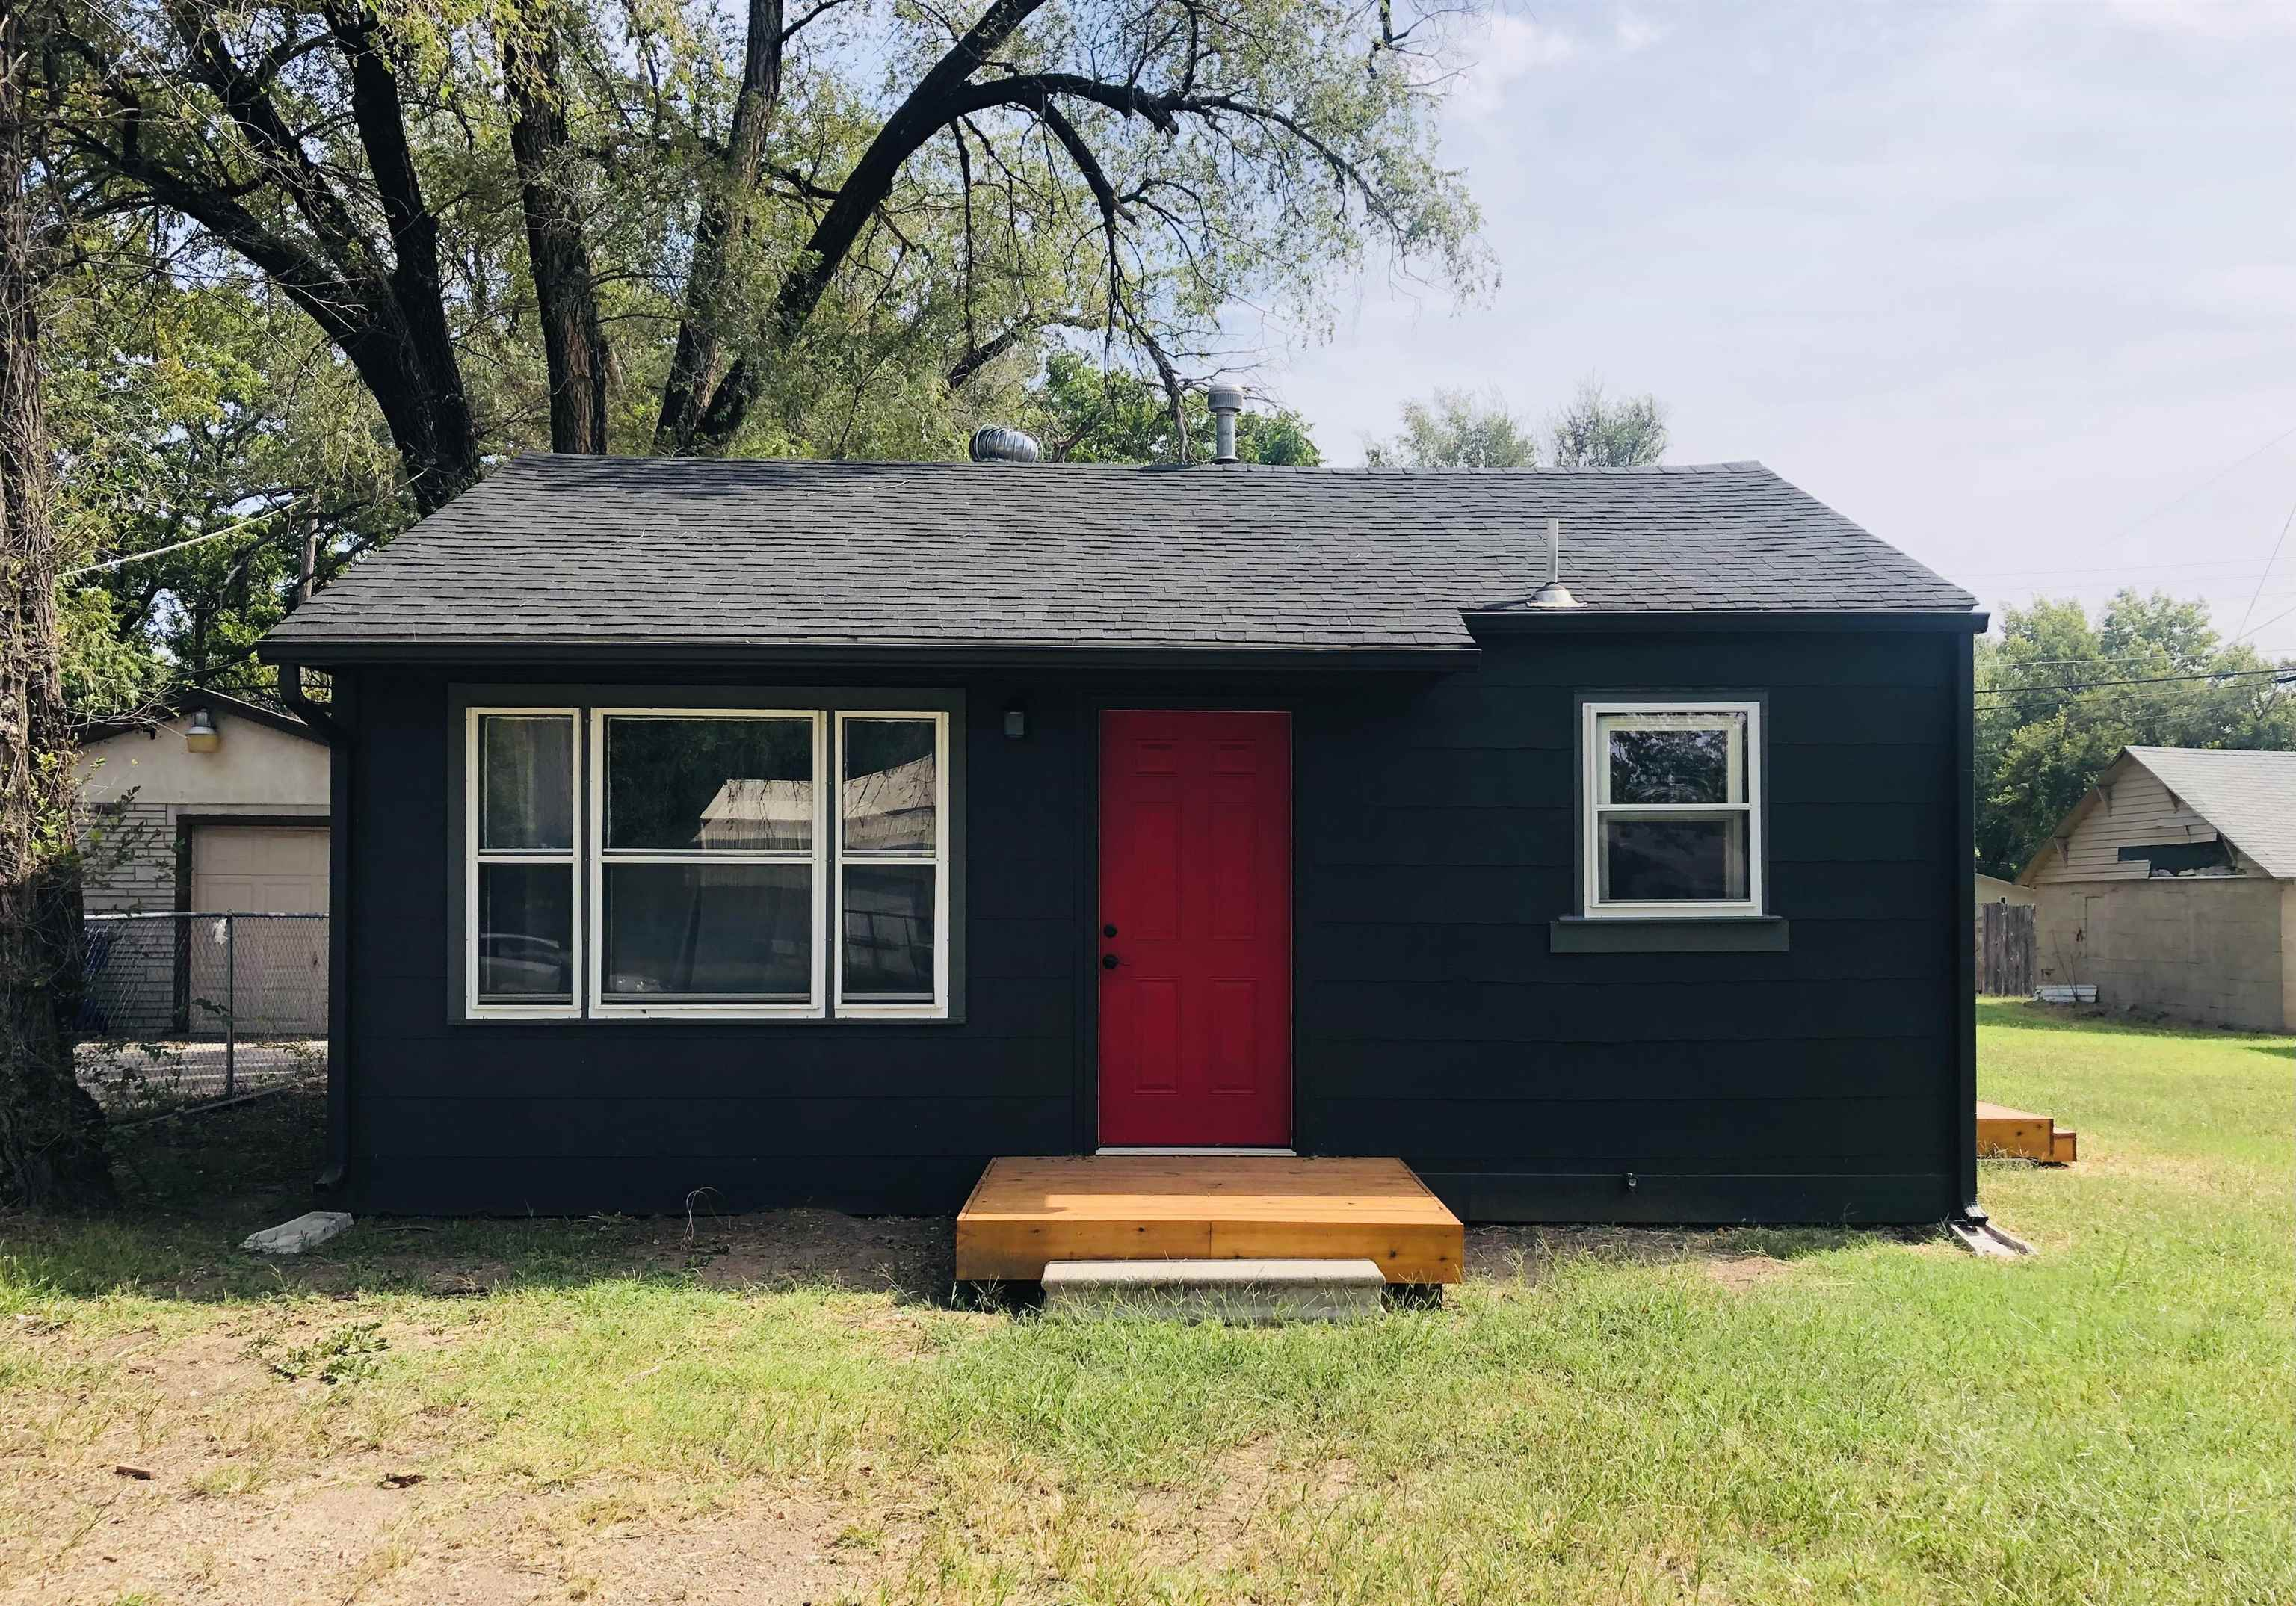 Adorable move in ready home located in West Wichita. Home has been completely remodeled. The kitchen